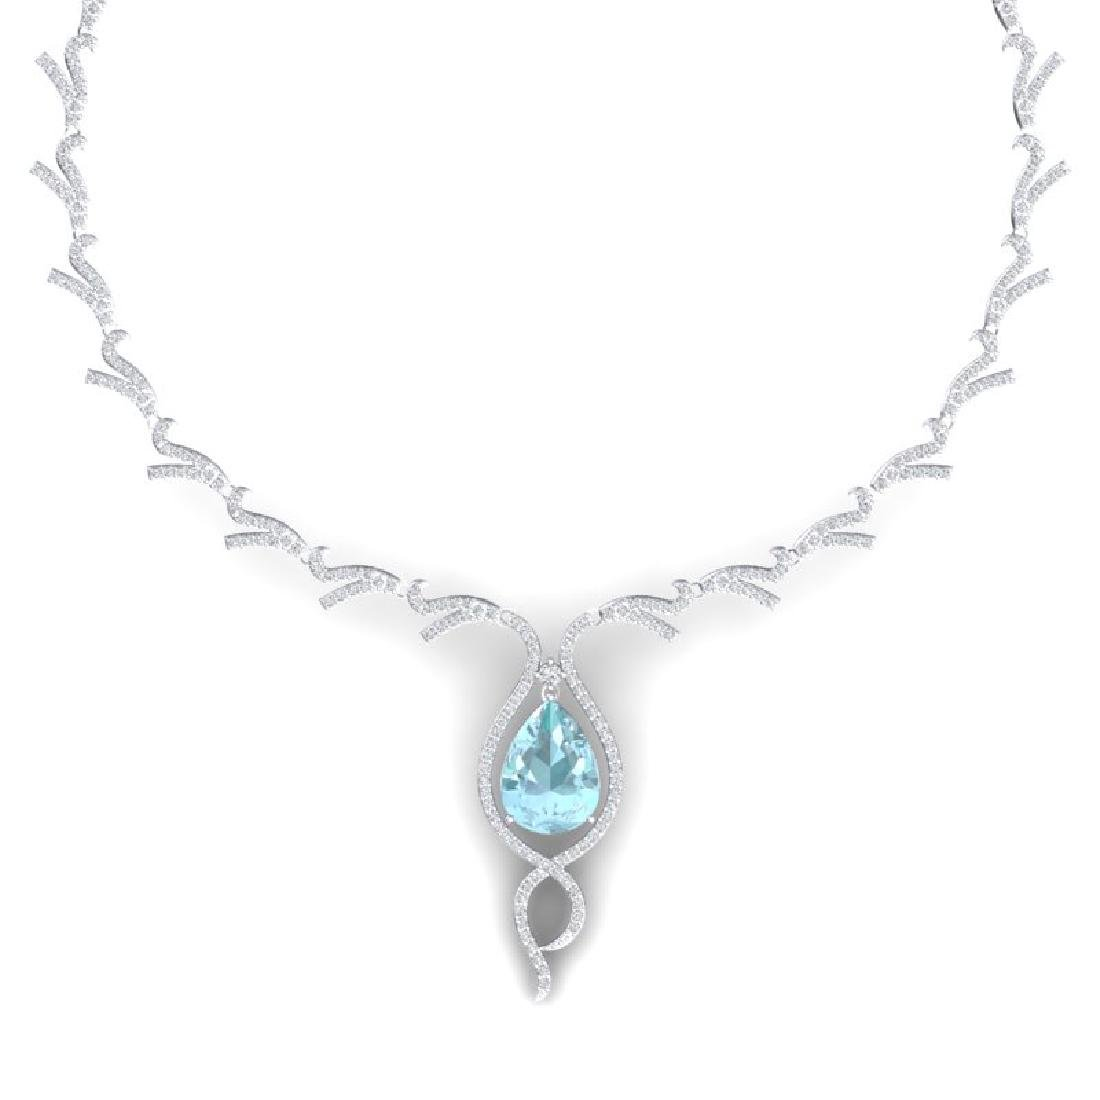 24.32 CTW Royalty Sky Topaz & VS Diamond Necklace 18K